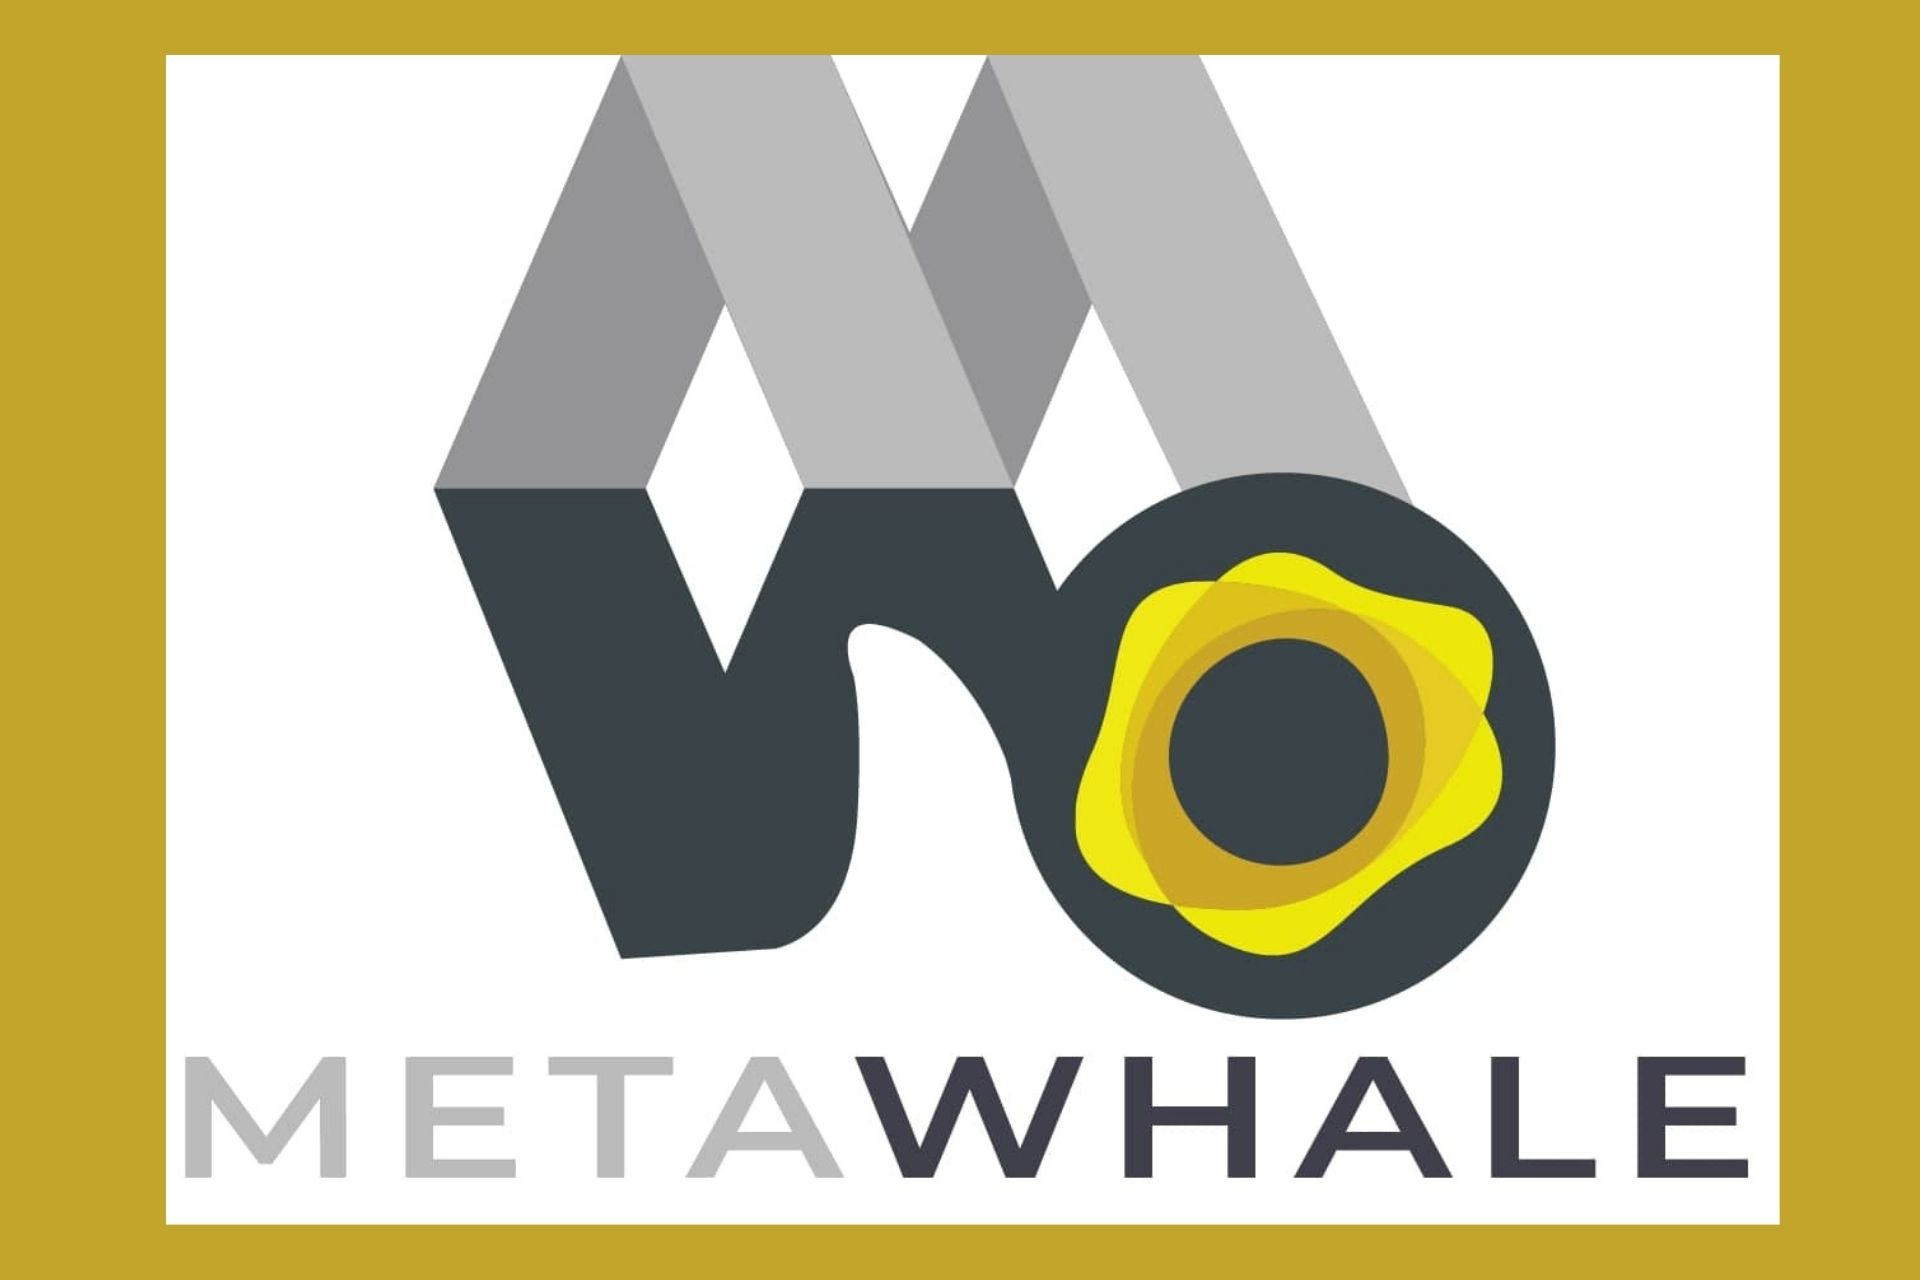 MetaWhale Gold – Deflationary And Elastic Supply Tokenomincs Backed By Gold (PAXG) Reserves